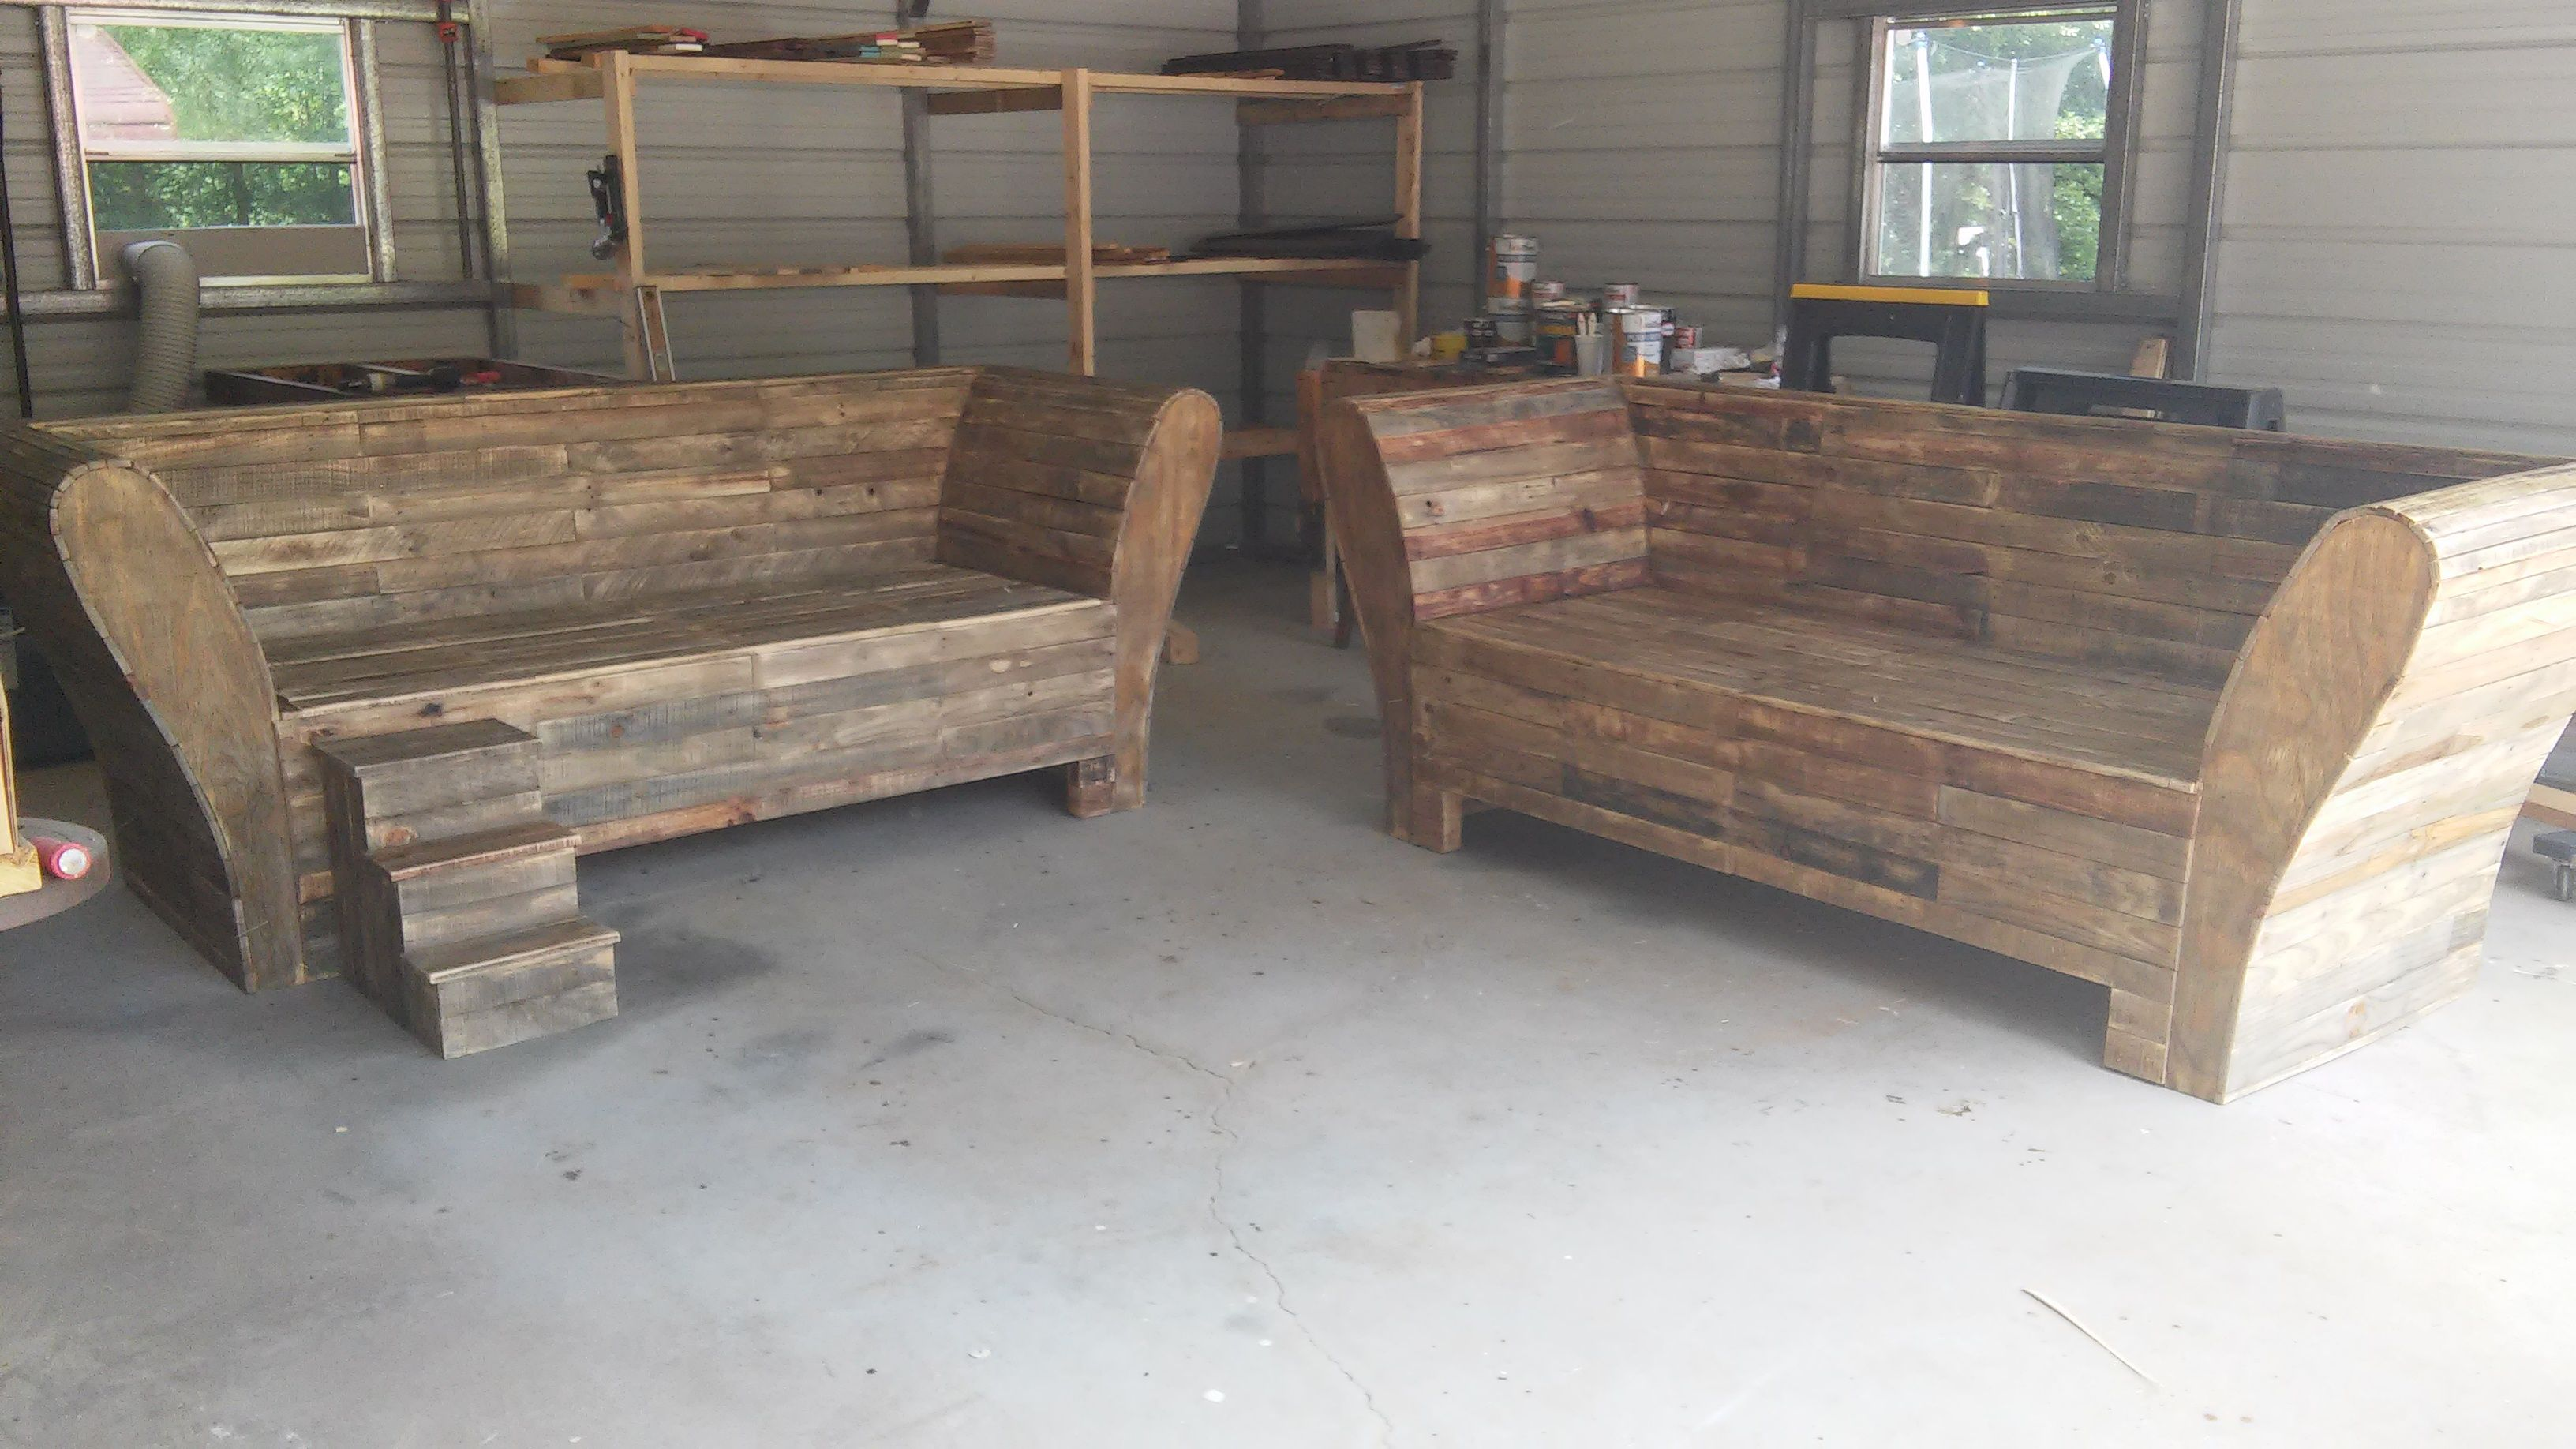 Exceptional Custom Benches Part - 9: Custom Benches Built For A Customer In Atlanta, GA. Built From Recycled  Wood And